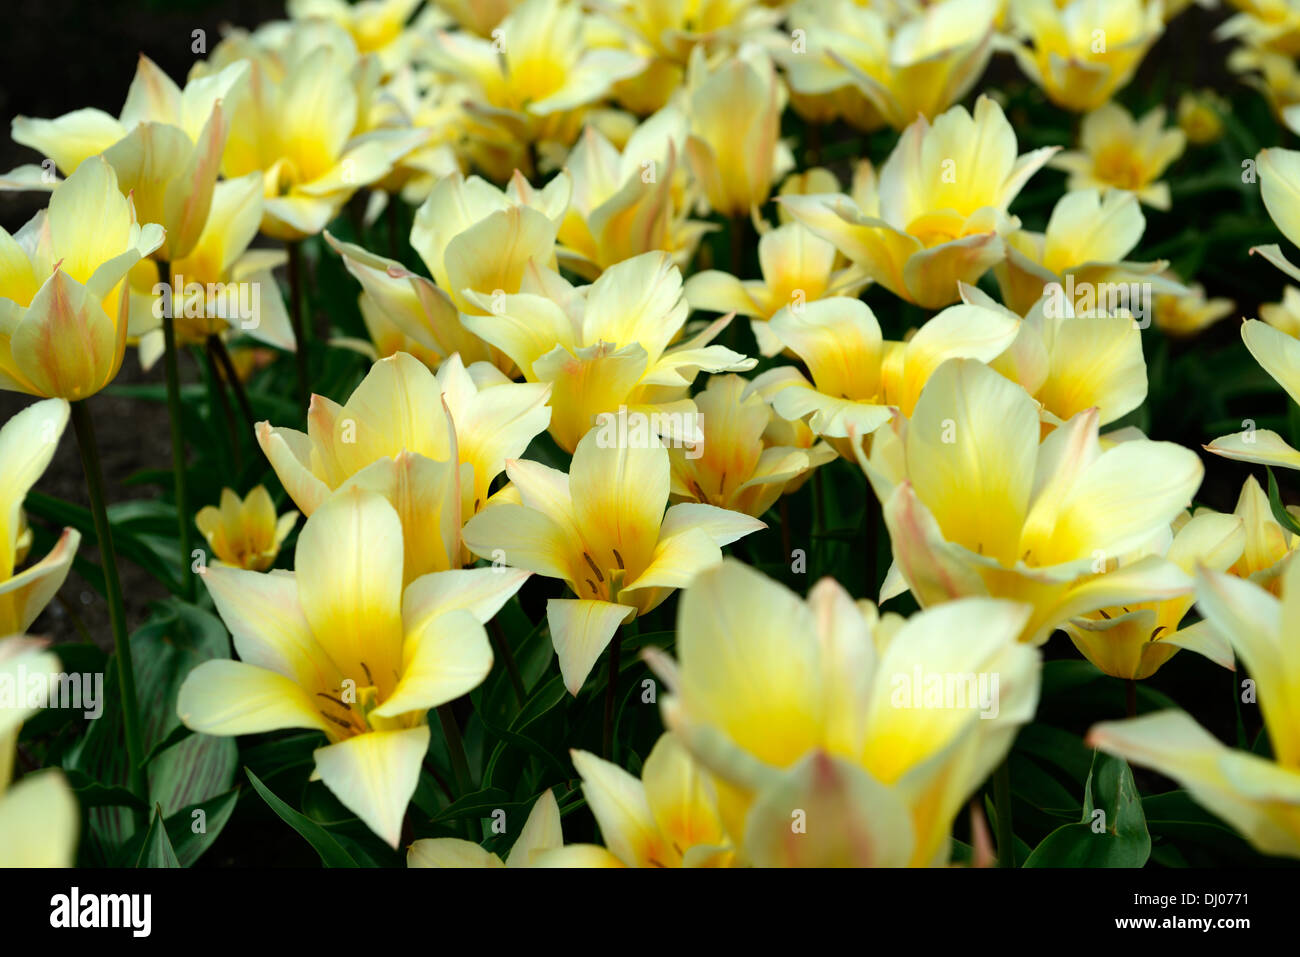 tulipa tulip fur elise greigii group 5 flowers spring bunch group cluster amber color yellow tone late spring - Stock Image